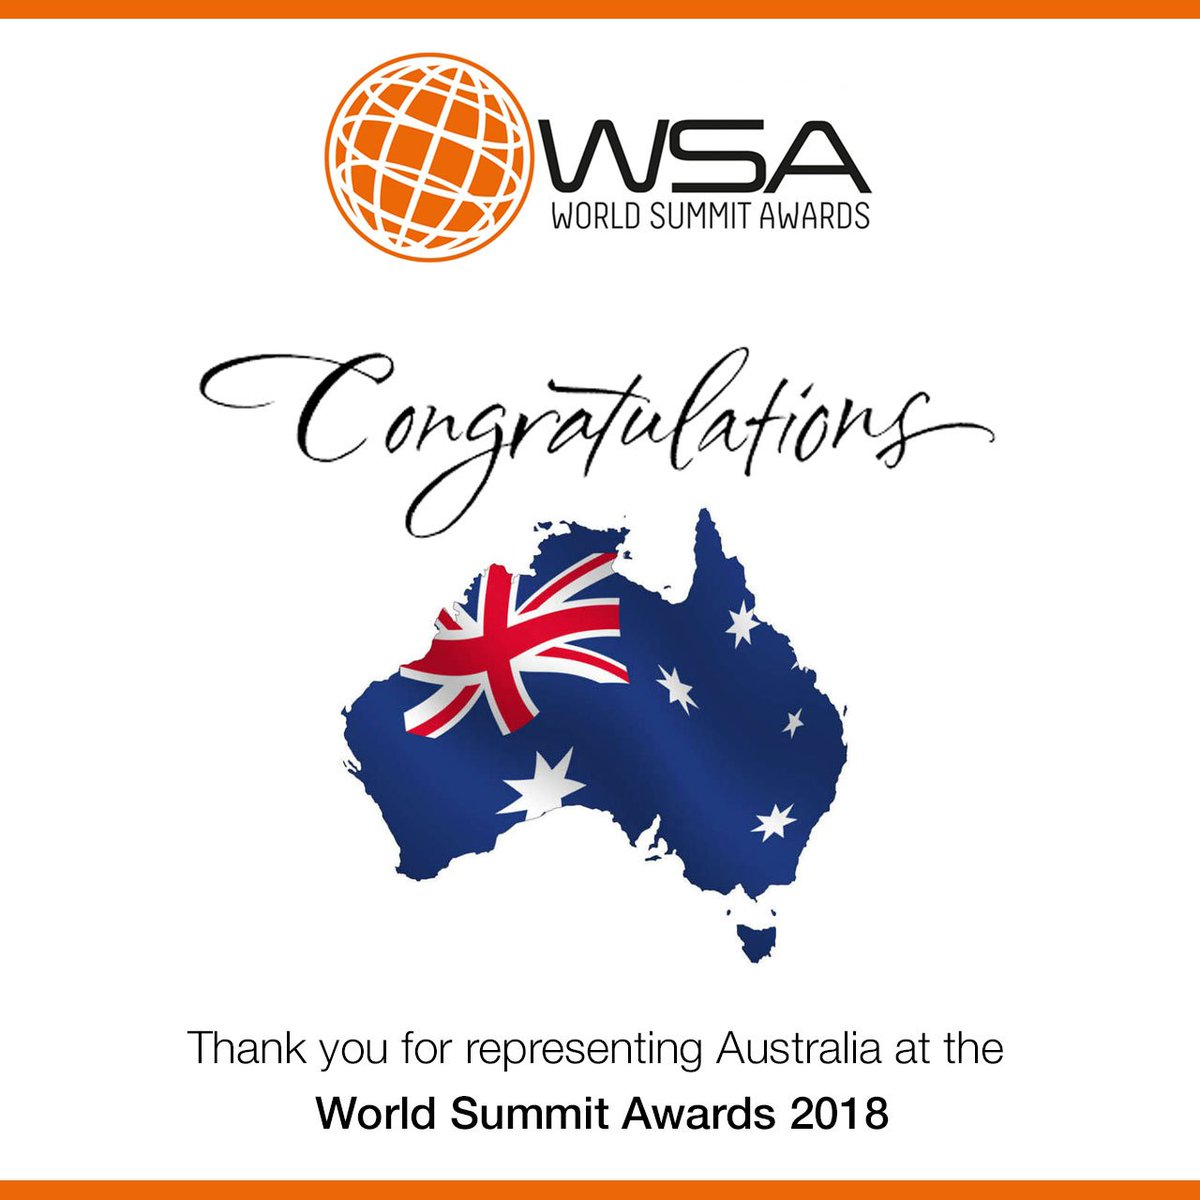 #Congratulations to all our Australian Nominees for representing #Australia 🇦🇺 at the 🇺🇳 World Summit Awards 2018 Global Competition.   We are proud of you 👍🏻 #WeAreProudOfYou  @WSAoffice #WSA #wsaaustralia #wsaghana #global #community #australia